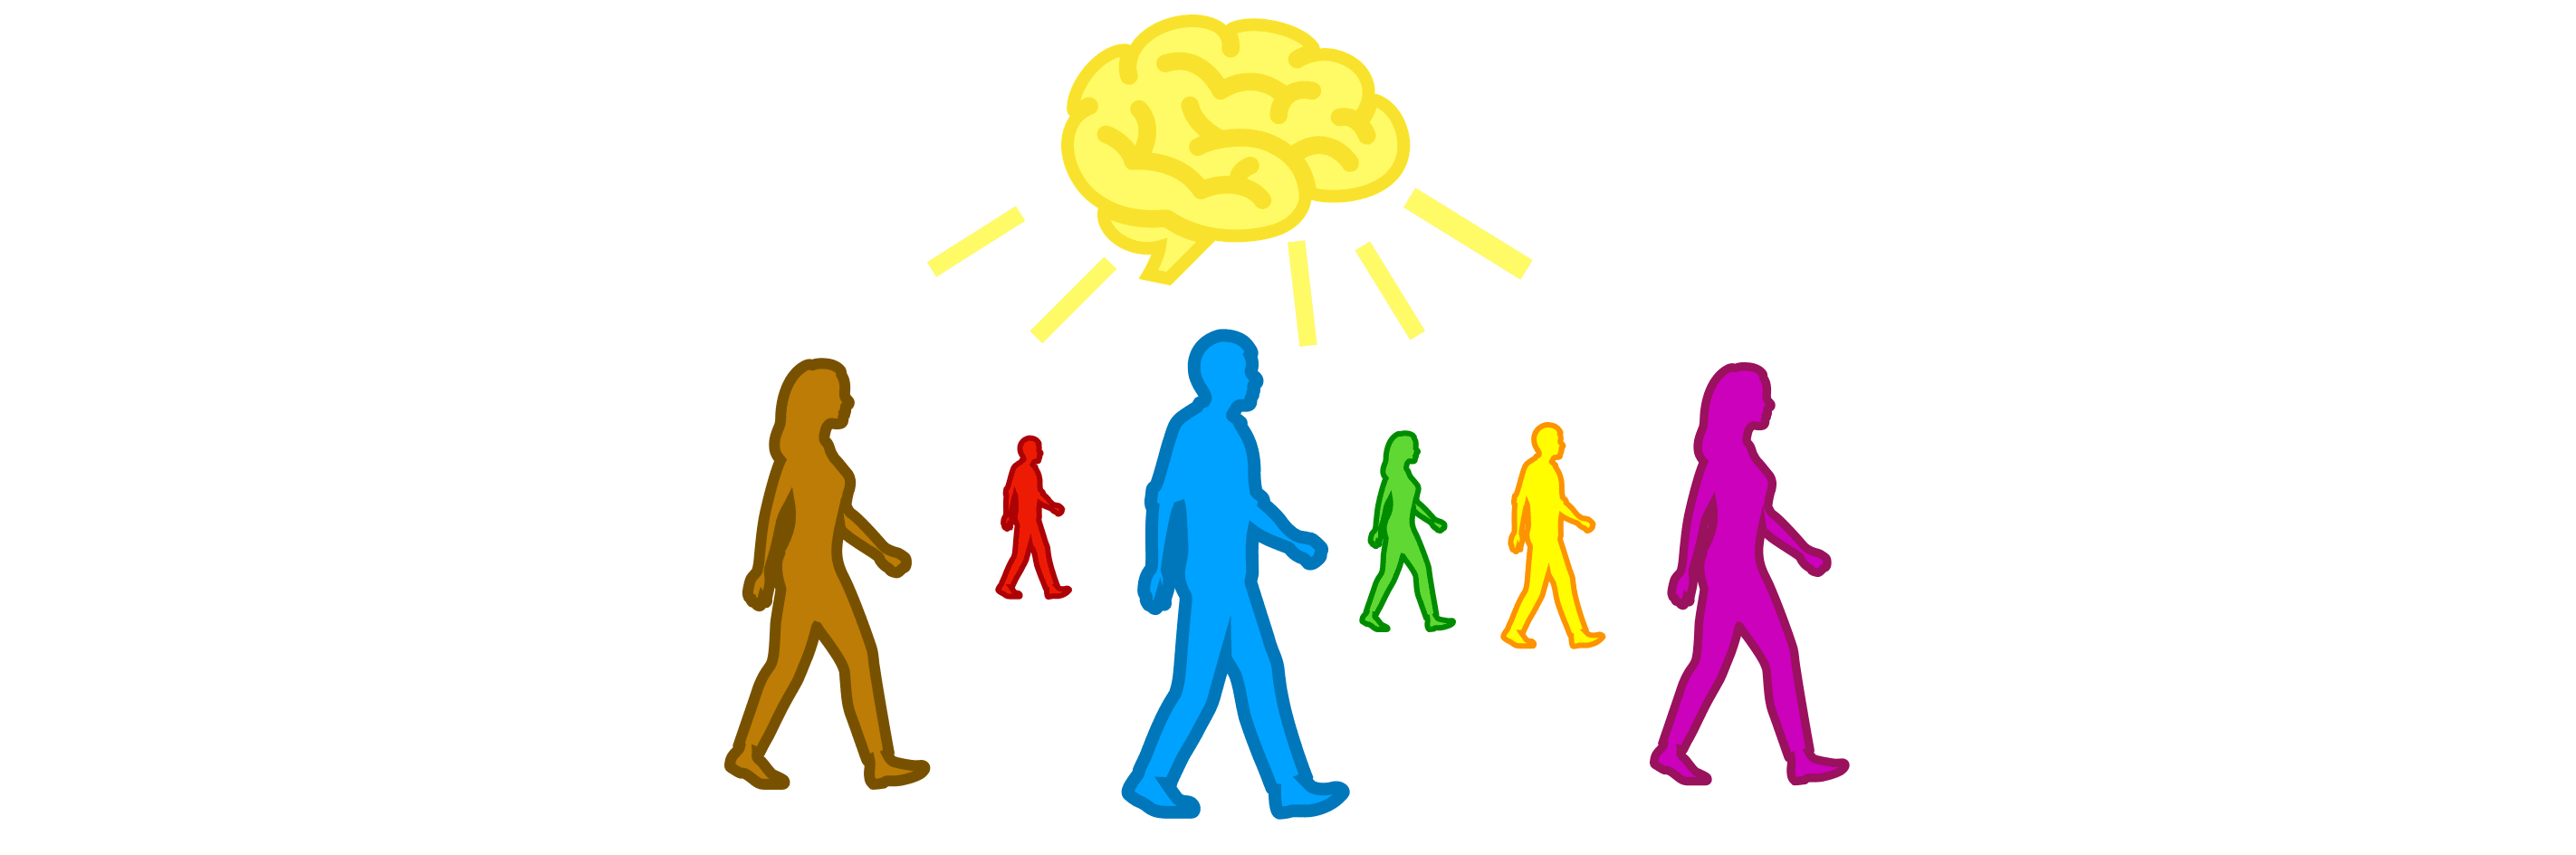 Drawing of people walking with a brain above